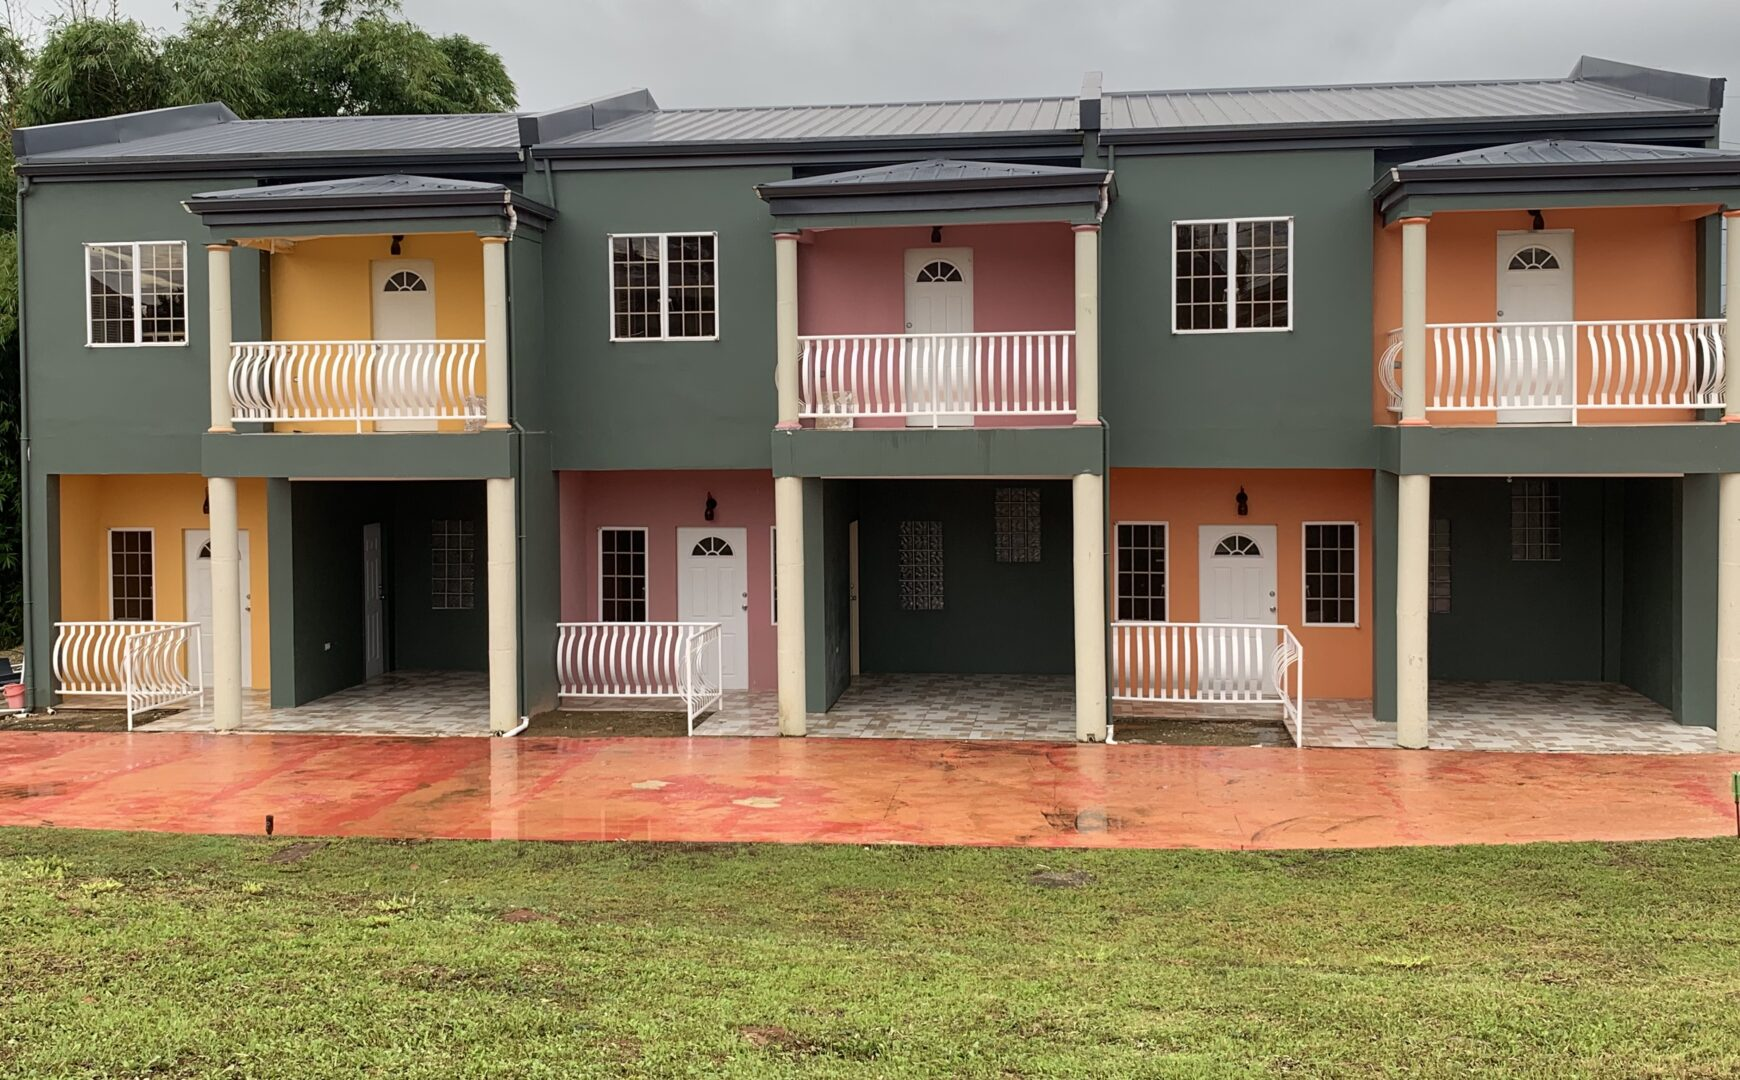 Gasprillo Townhouse for Sale or Rent to Own